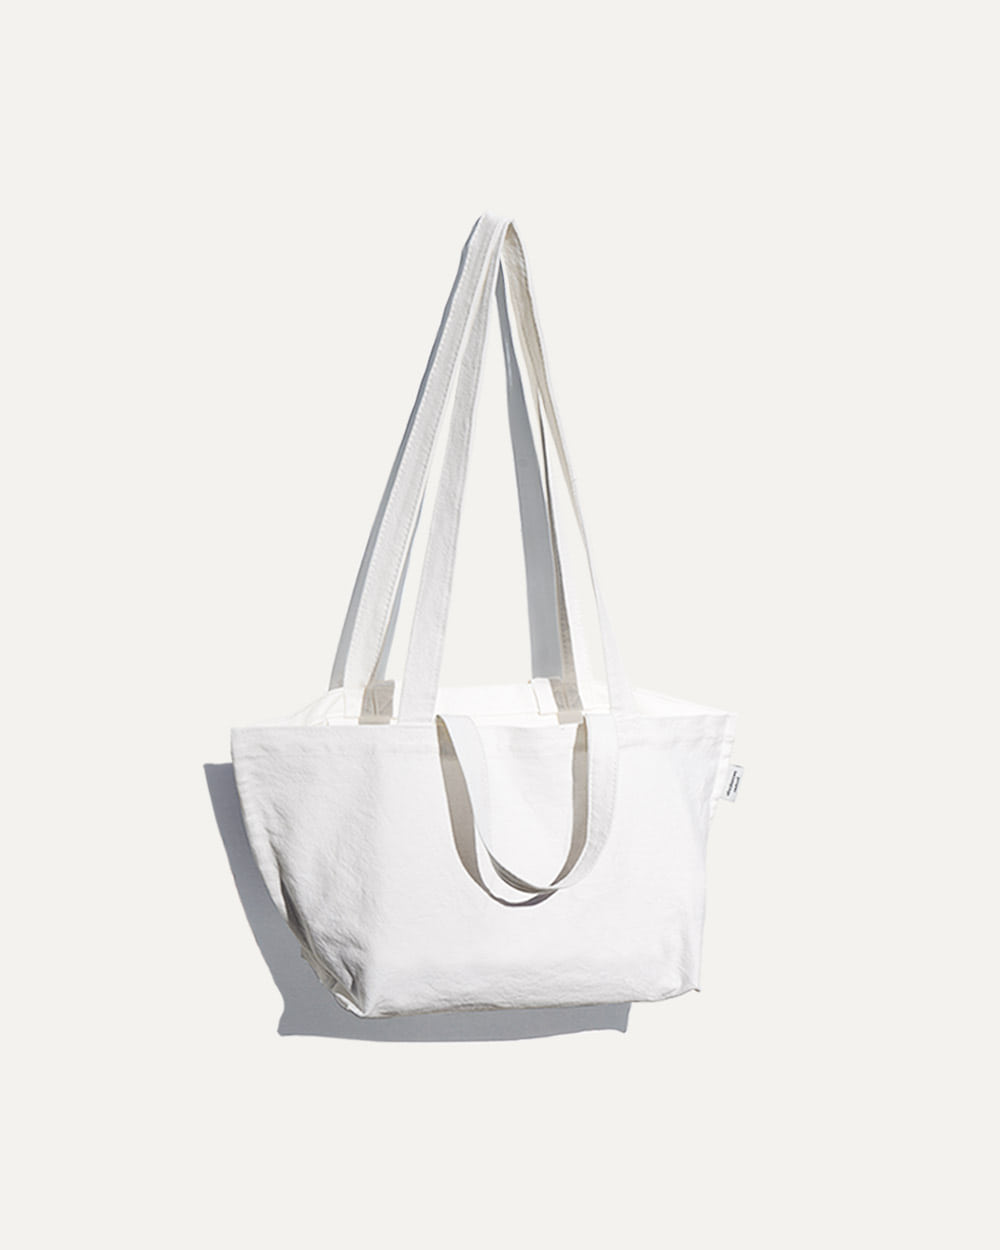 Four Seasons Bag / Small / Warm White (사계절 천가방)